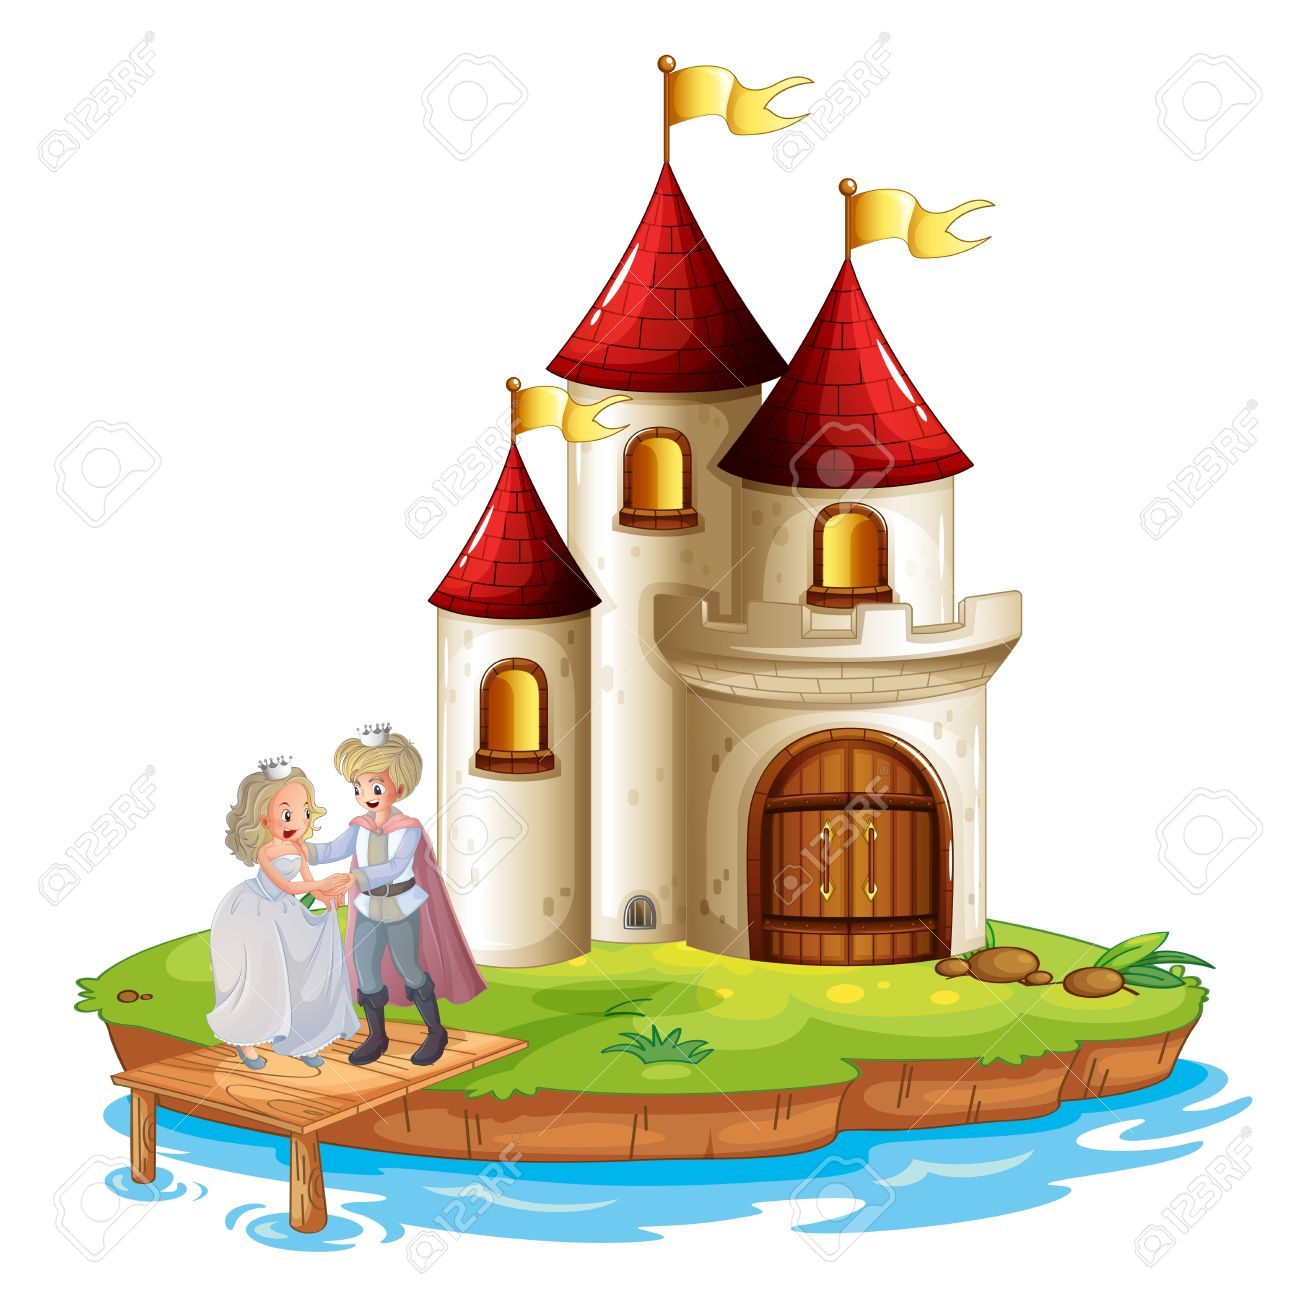 Illustration Of A Prince And A Princess With A Castle At The.